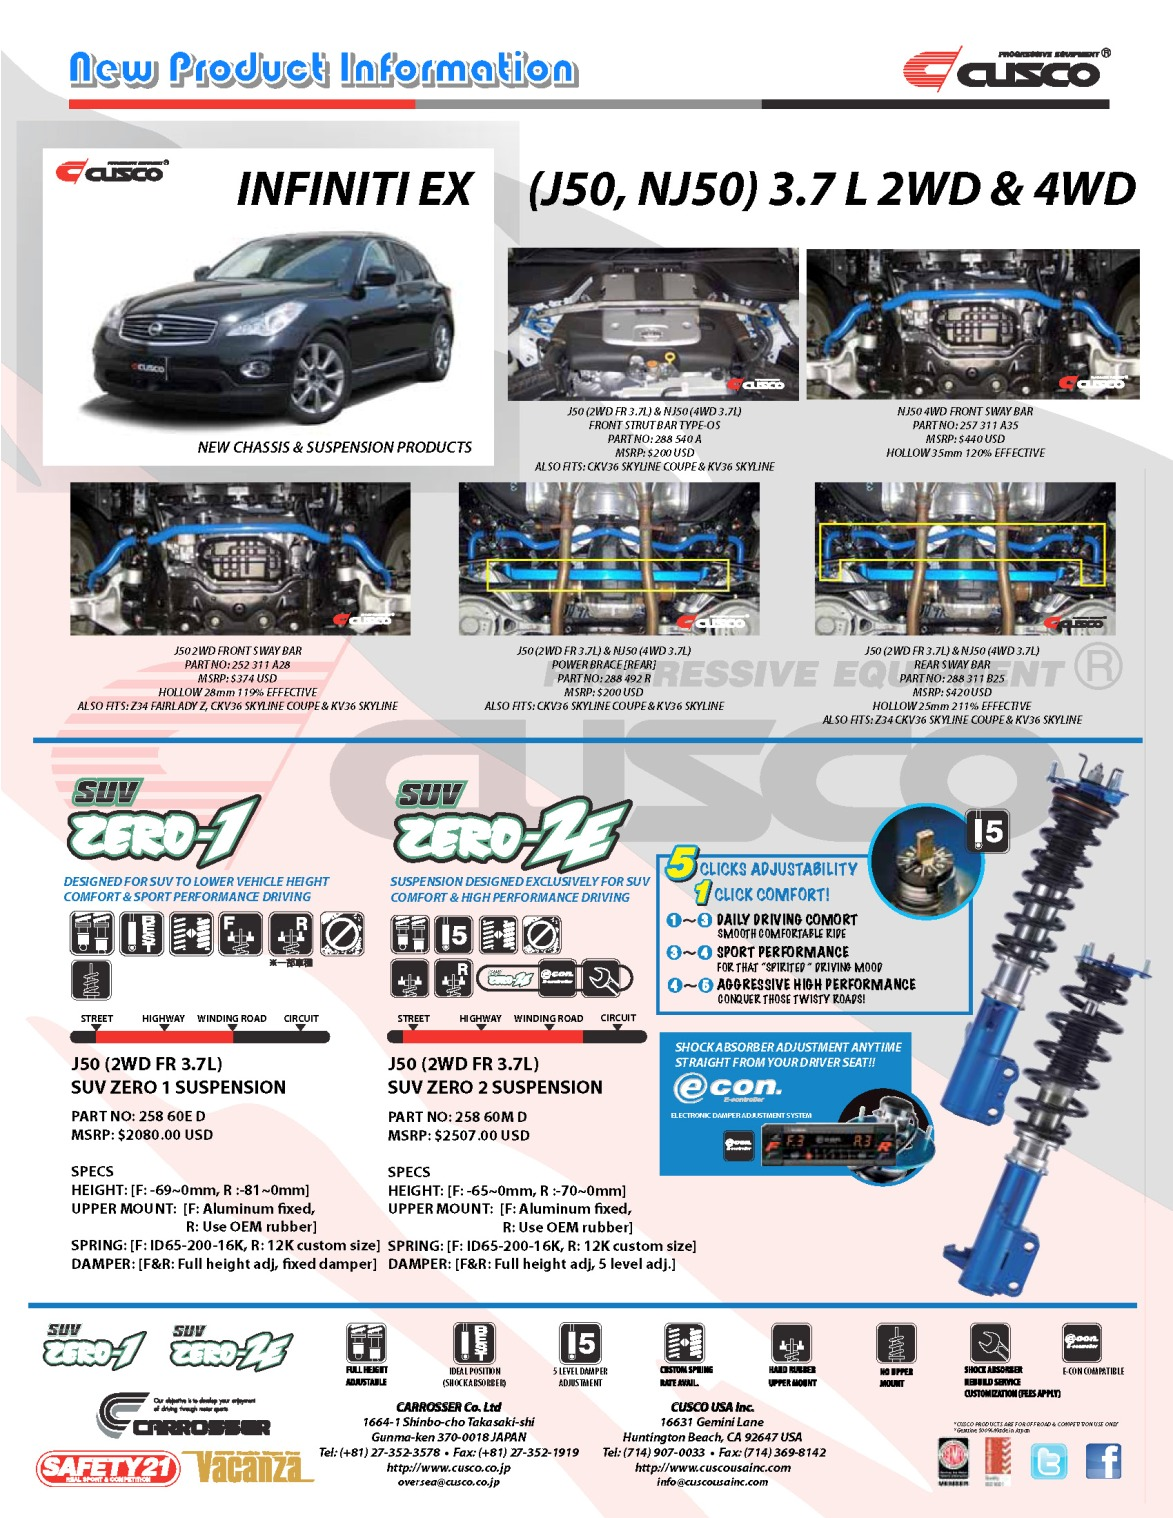 New Products for the Infiniti EX (Skyline Crossover J50 NJ50)